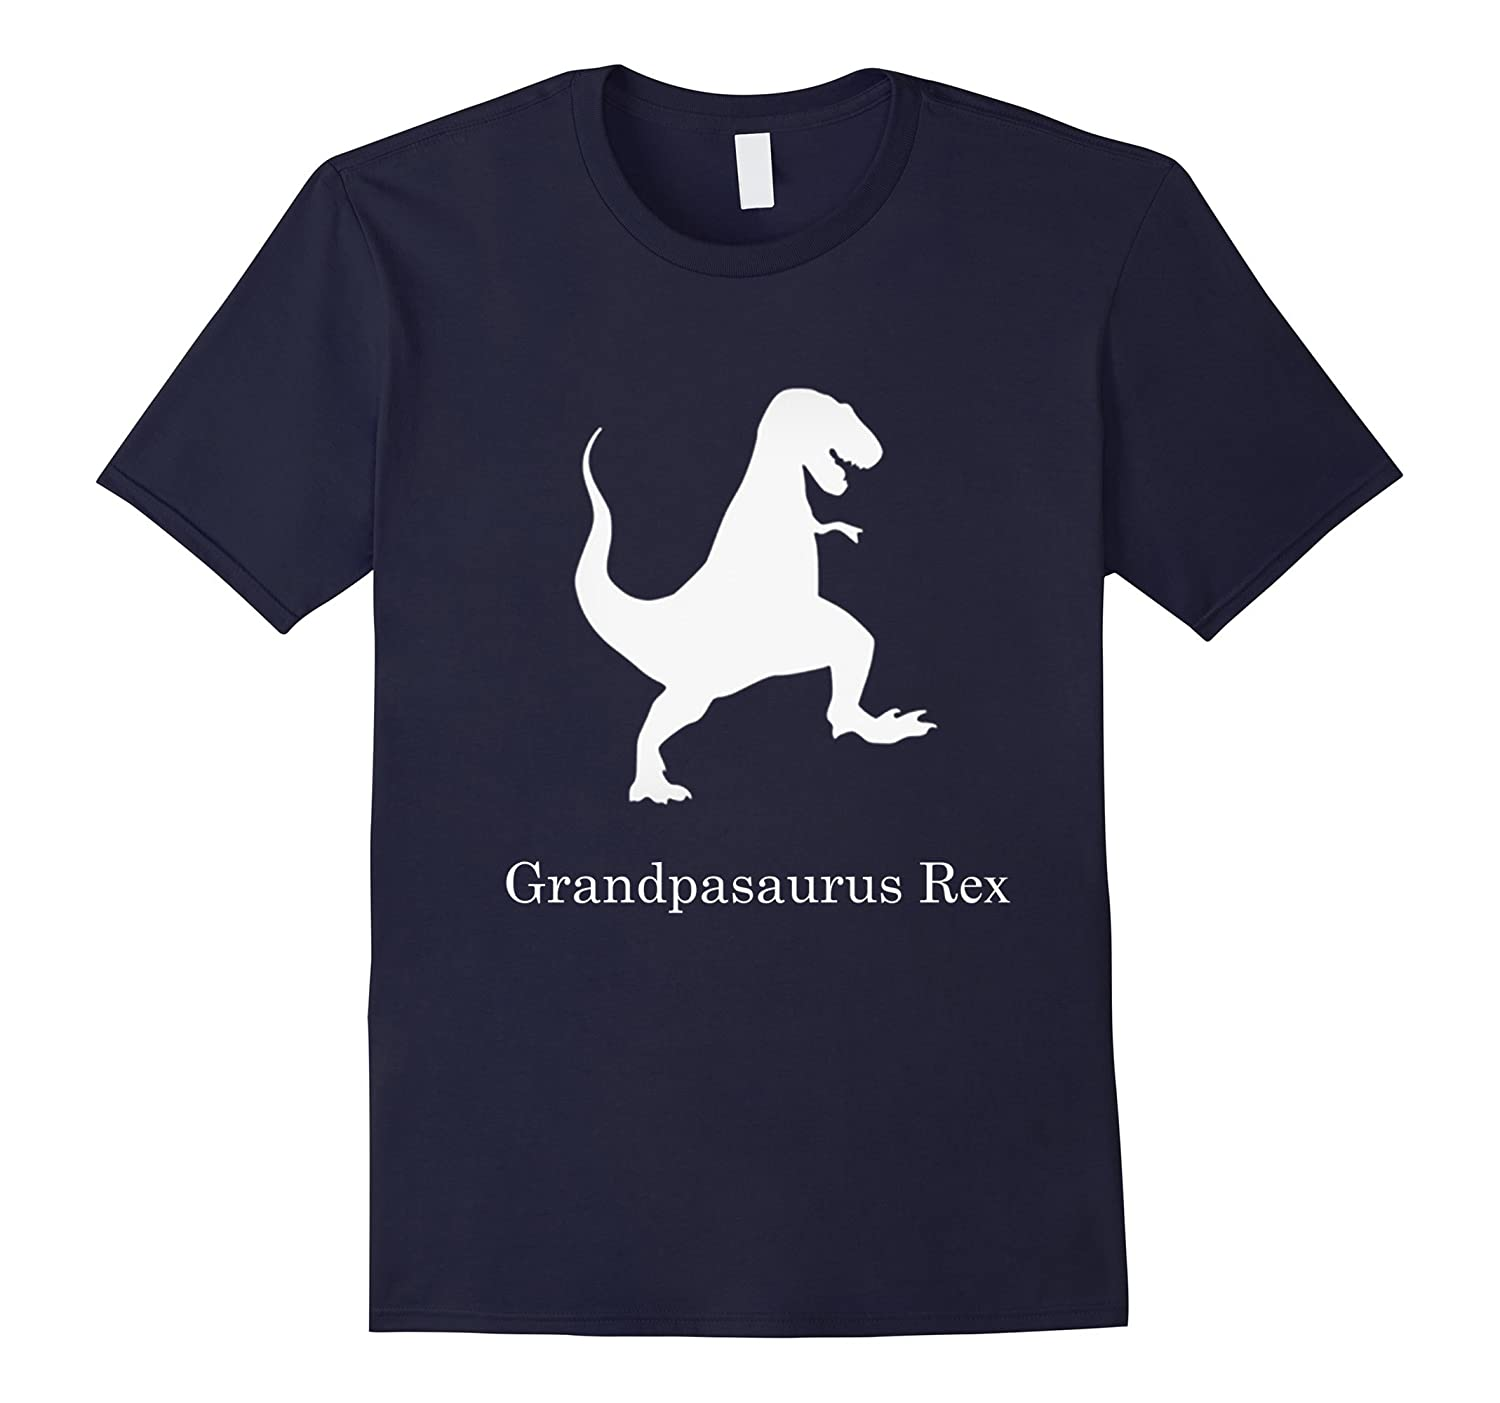 Mens Grandpasaurus Rex T Shirt Grandparents Day Grandpa Gift-RT